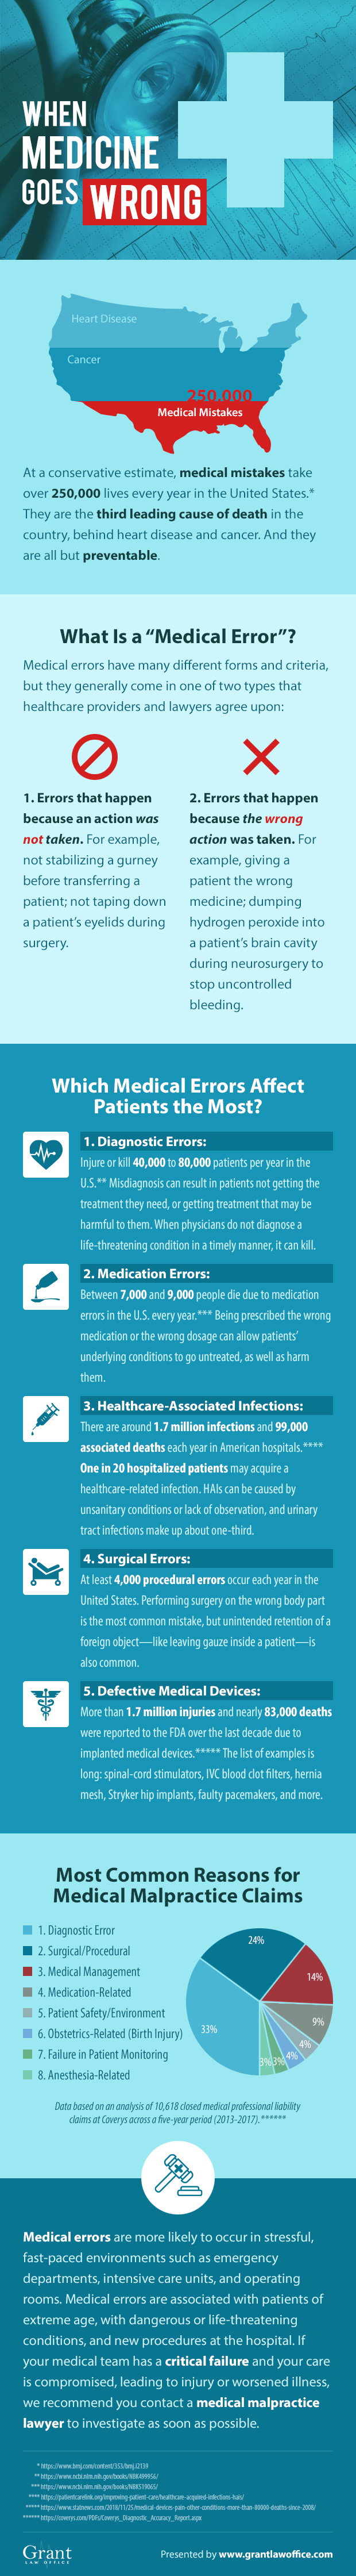 Grant Law Office Presents: Medical Mistakes Infographic